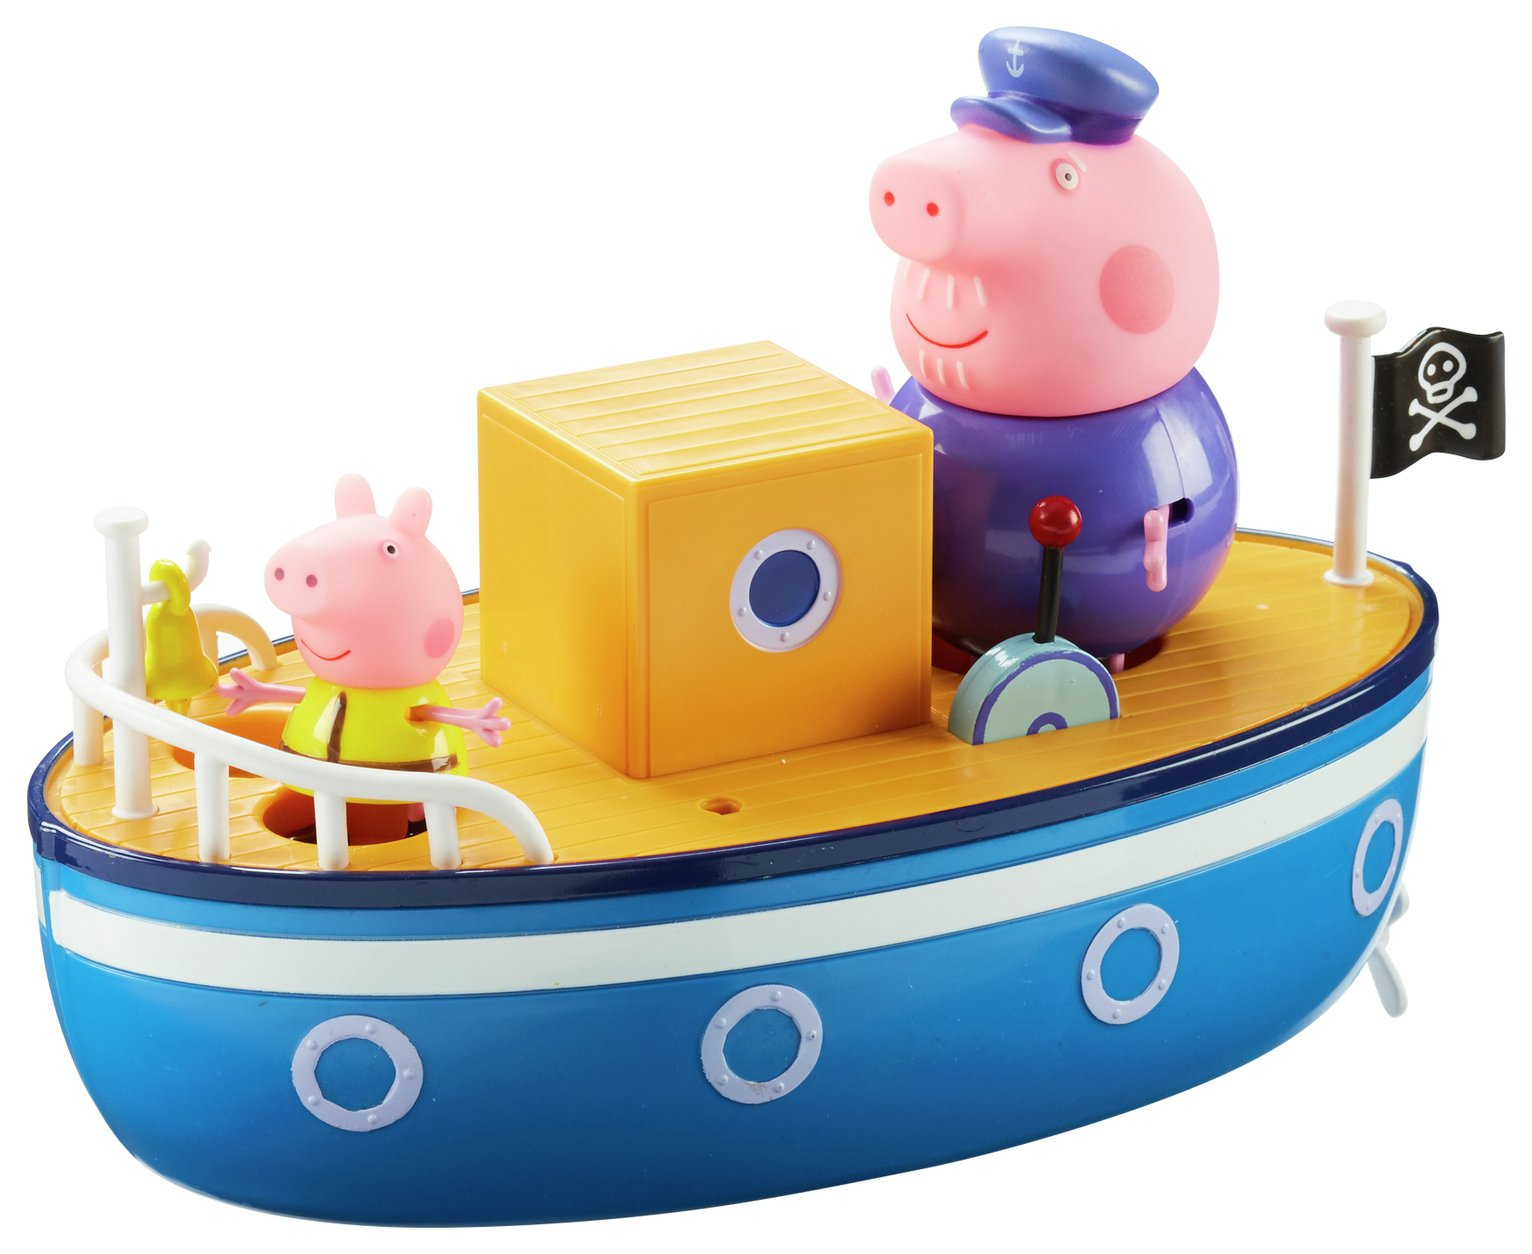 Peppa Pig - Grandad Dog's Pirate Ship from Peppa pig